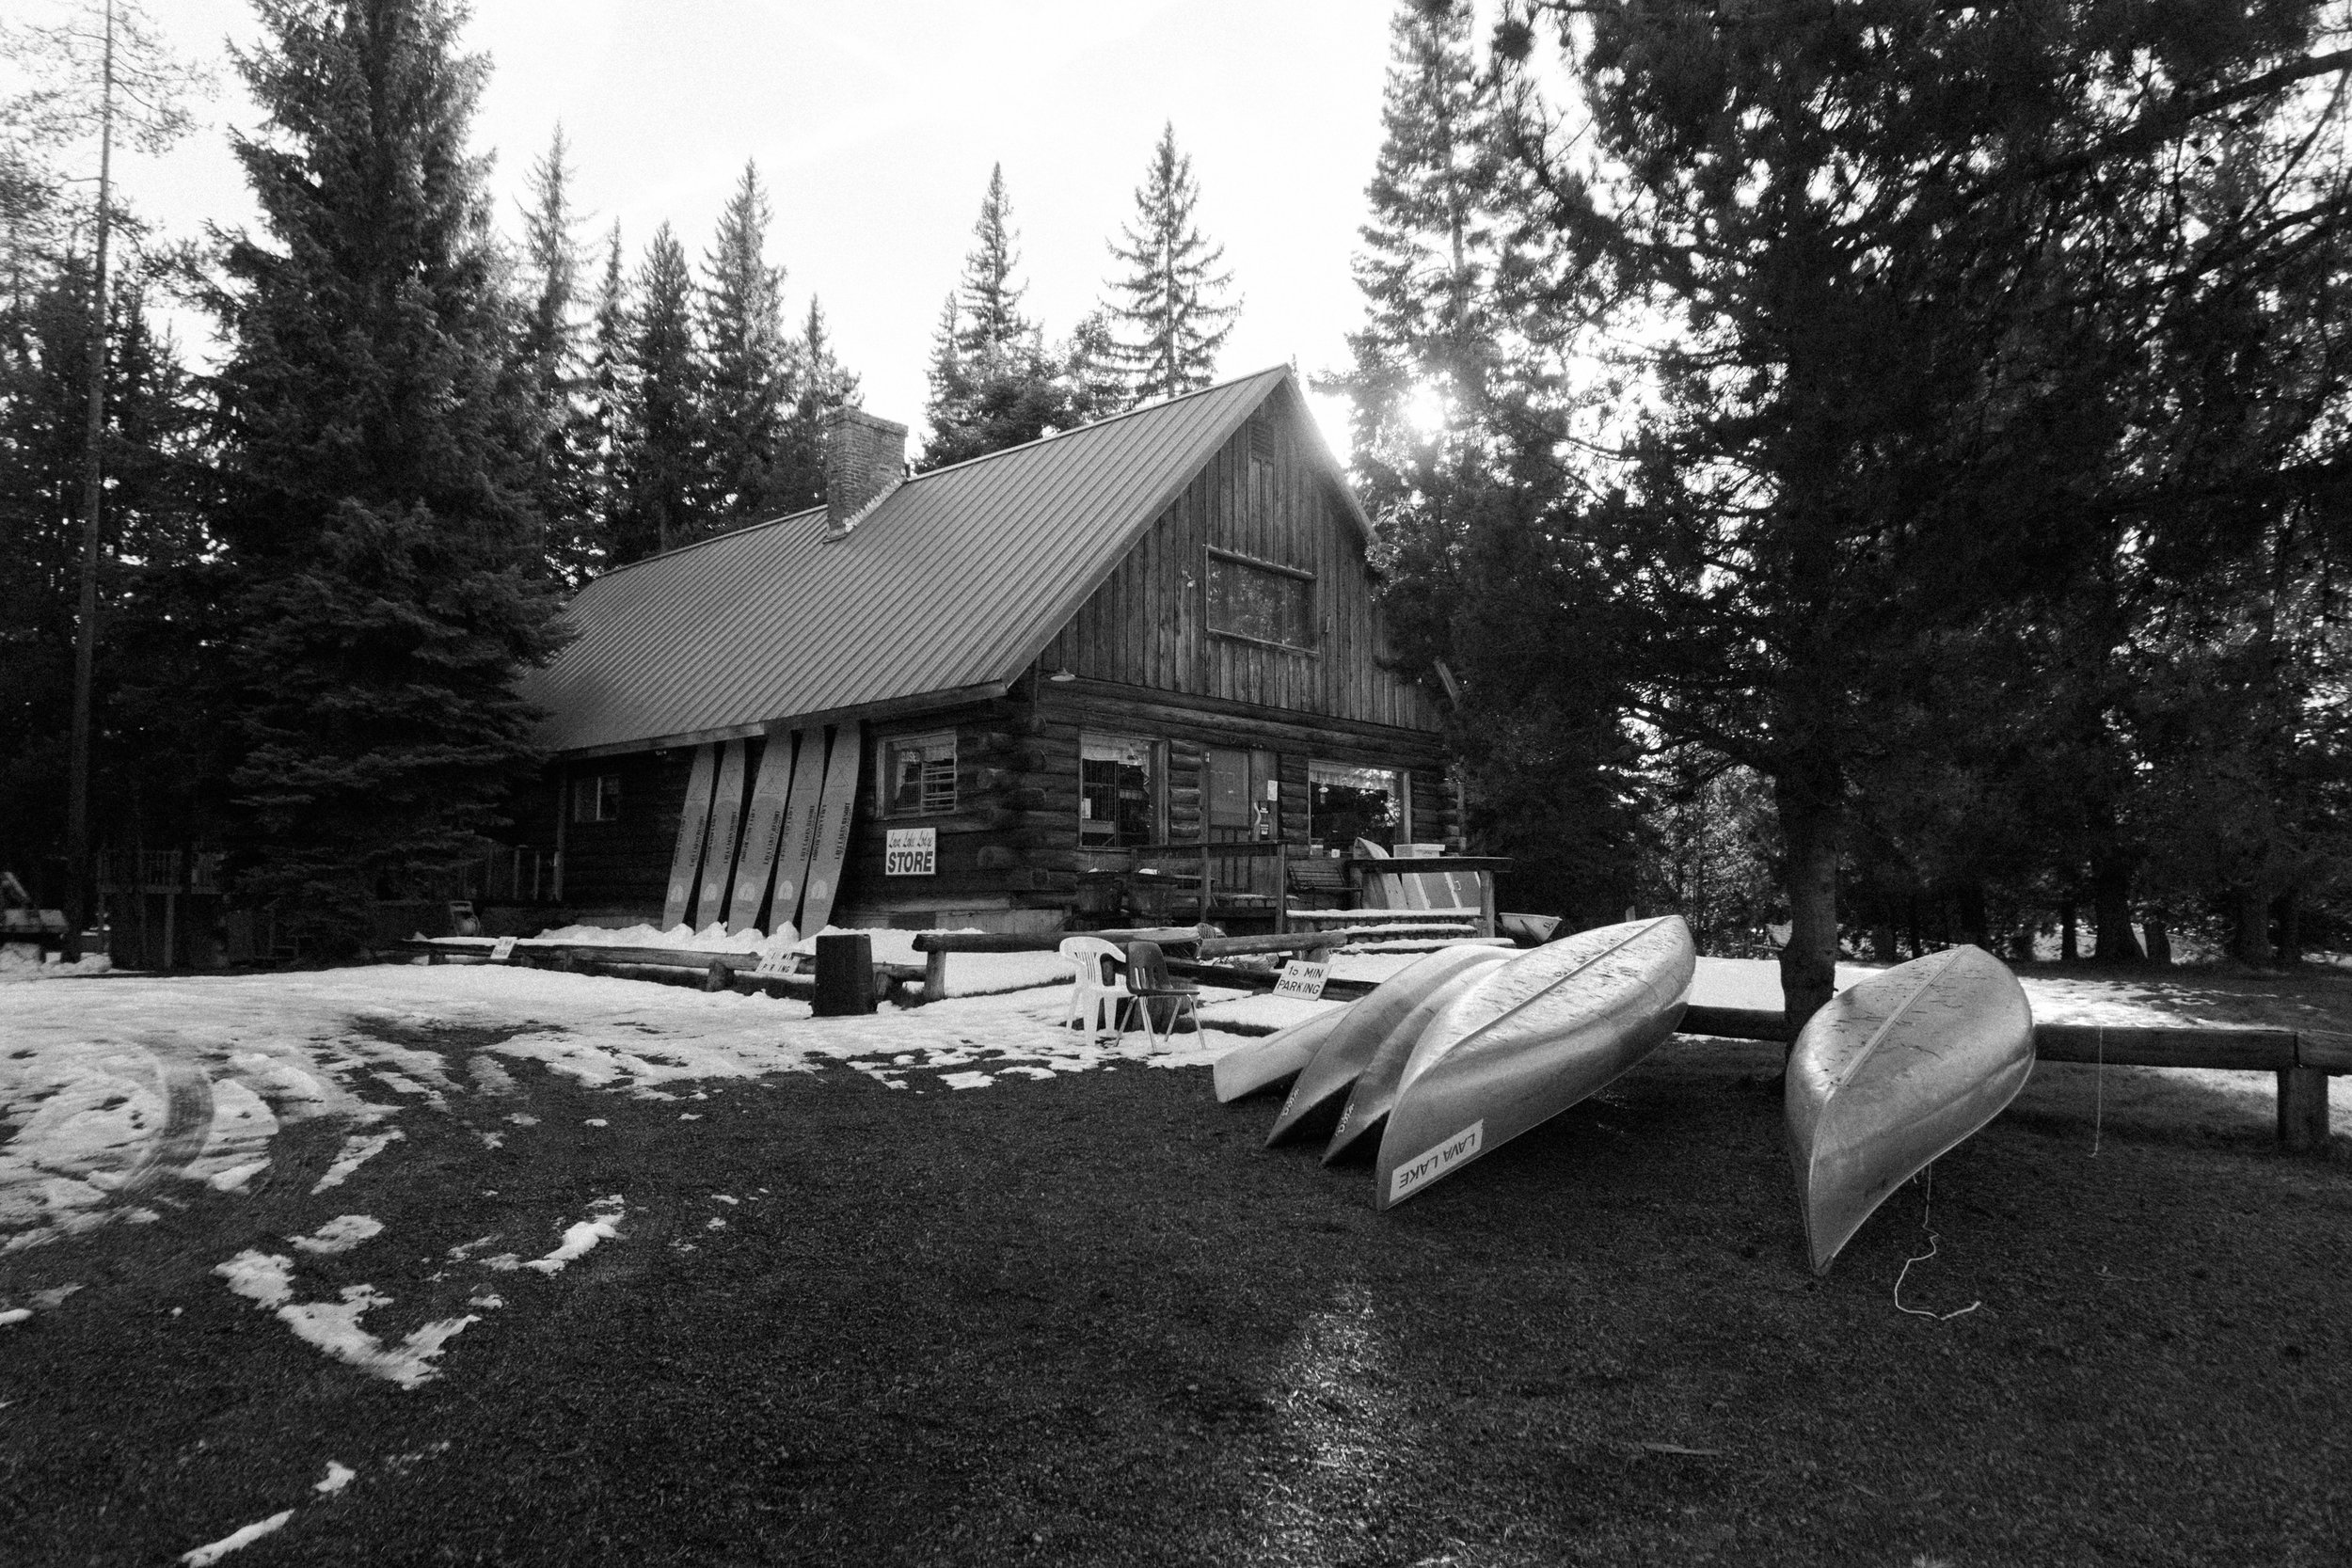 Lava Lake campground store, closed for the season